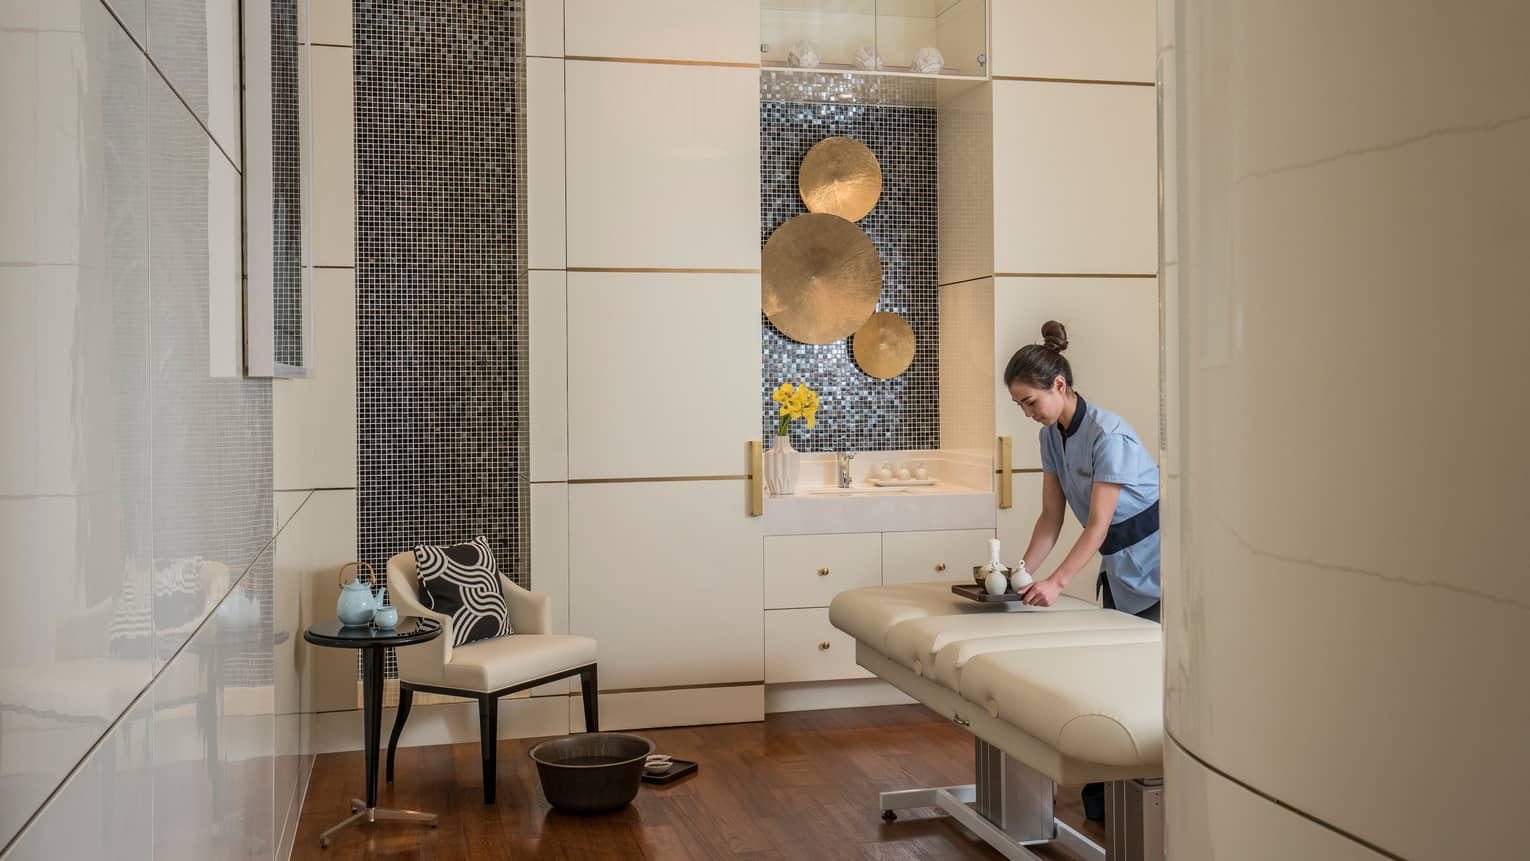 Spa staff sets tray with vases on padded massage table by chair, brass discs on wall